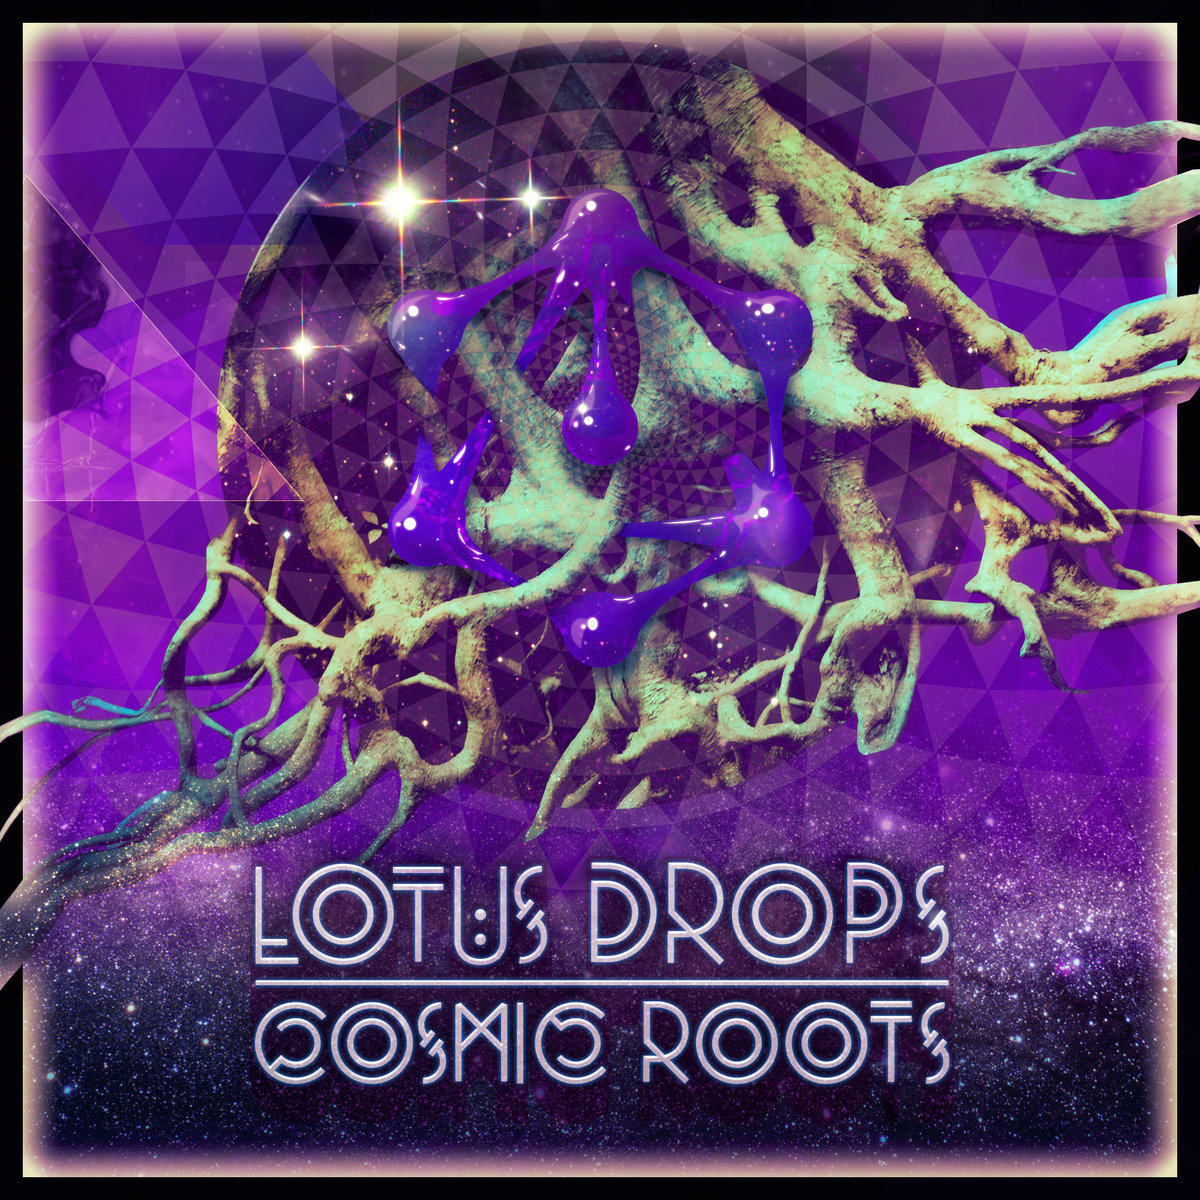 Lotus Drops - Cosmic Roots